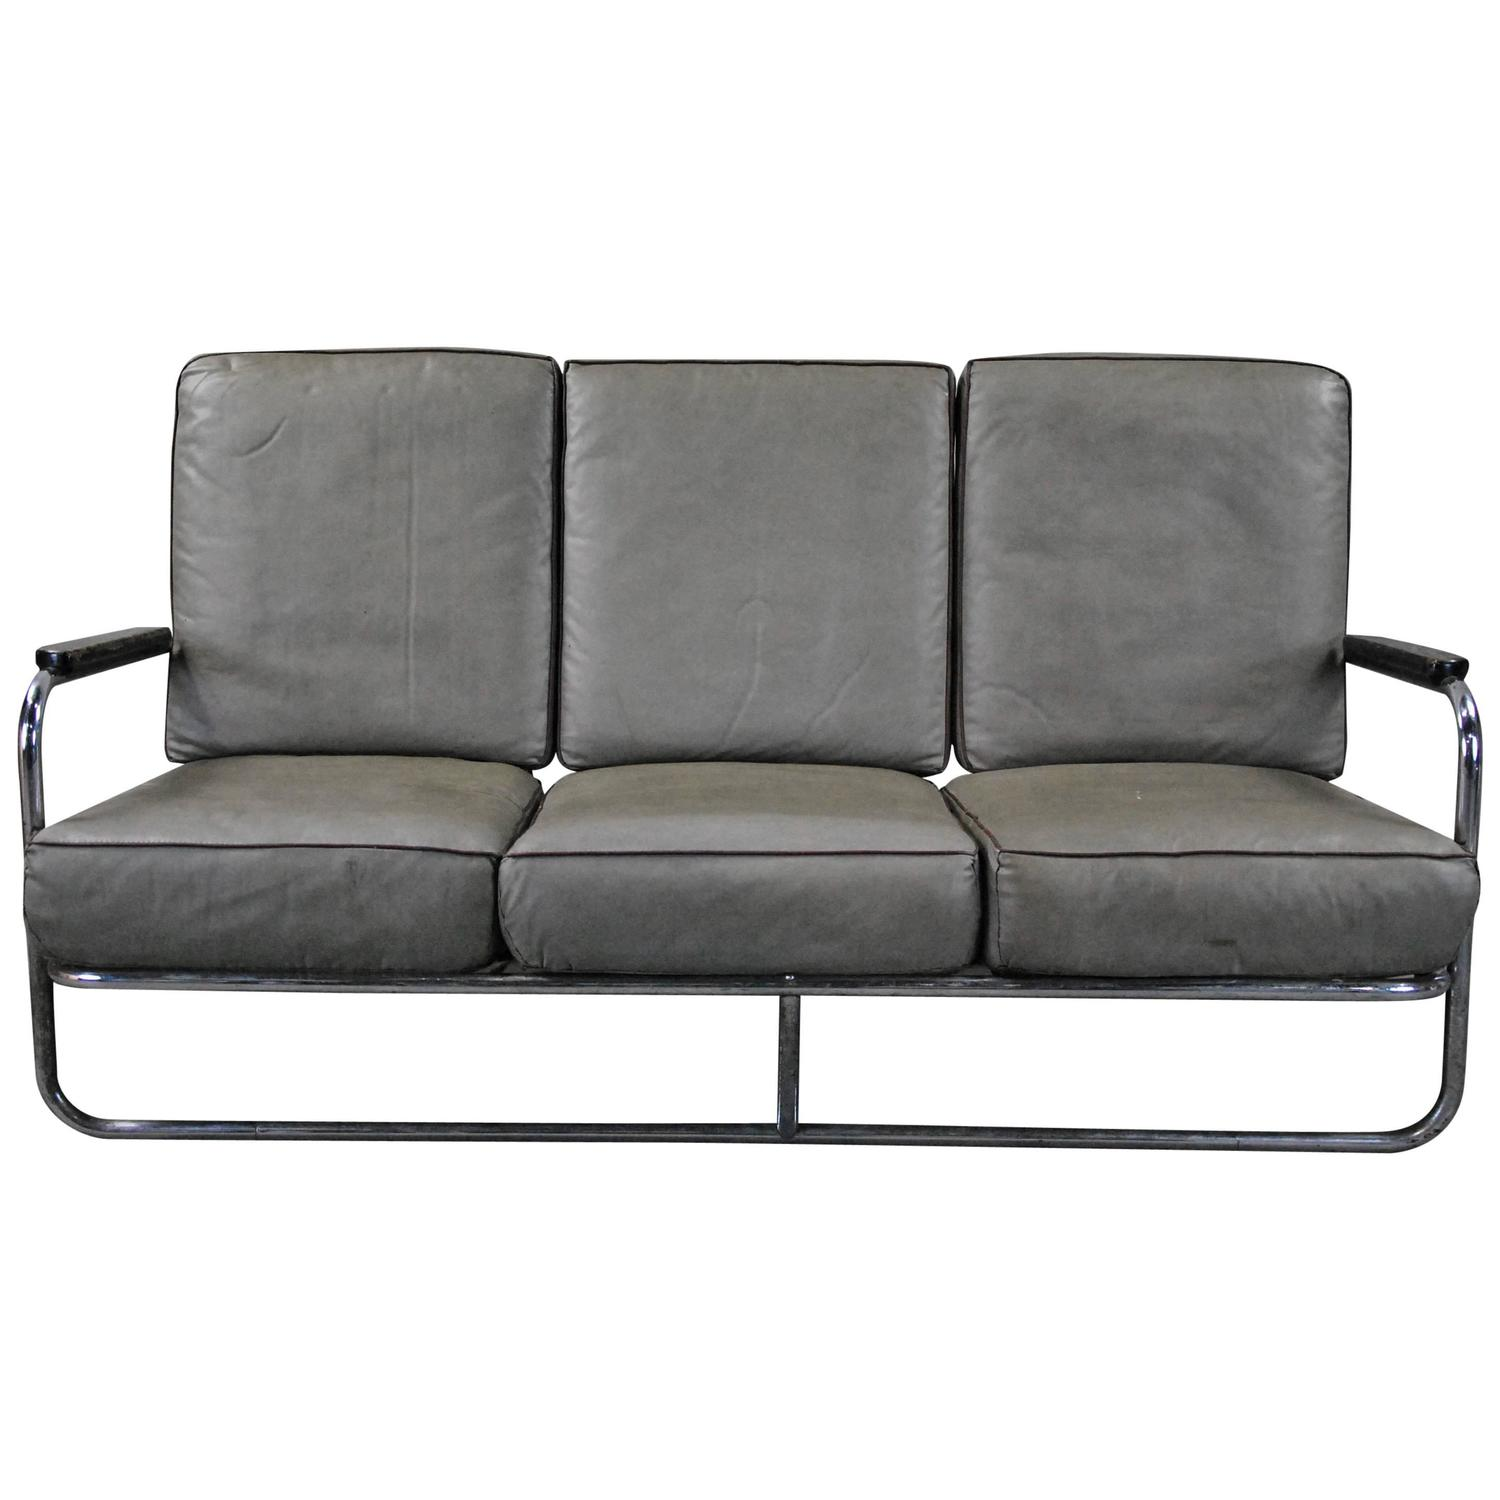 1930s Sofas 136 For Sale at 1stdibs